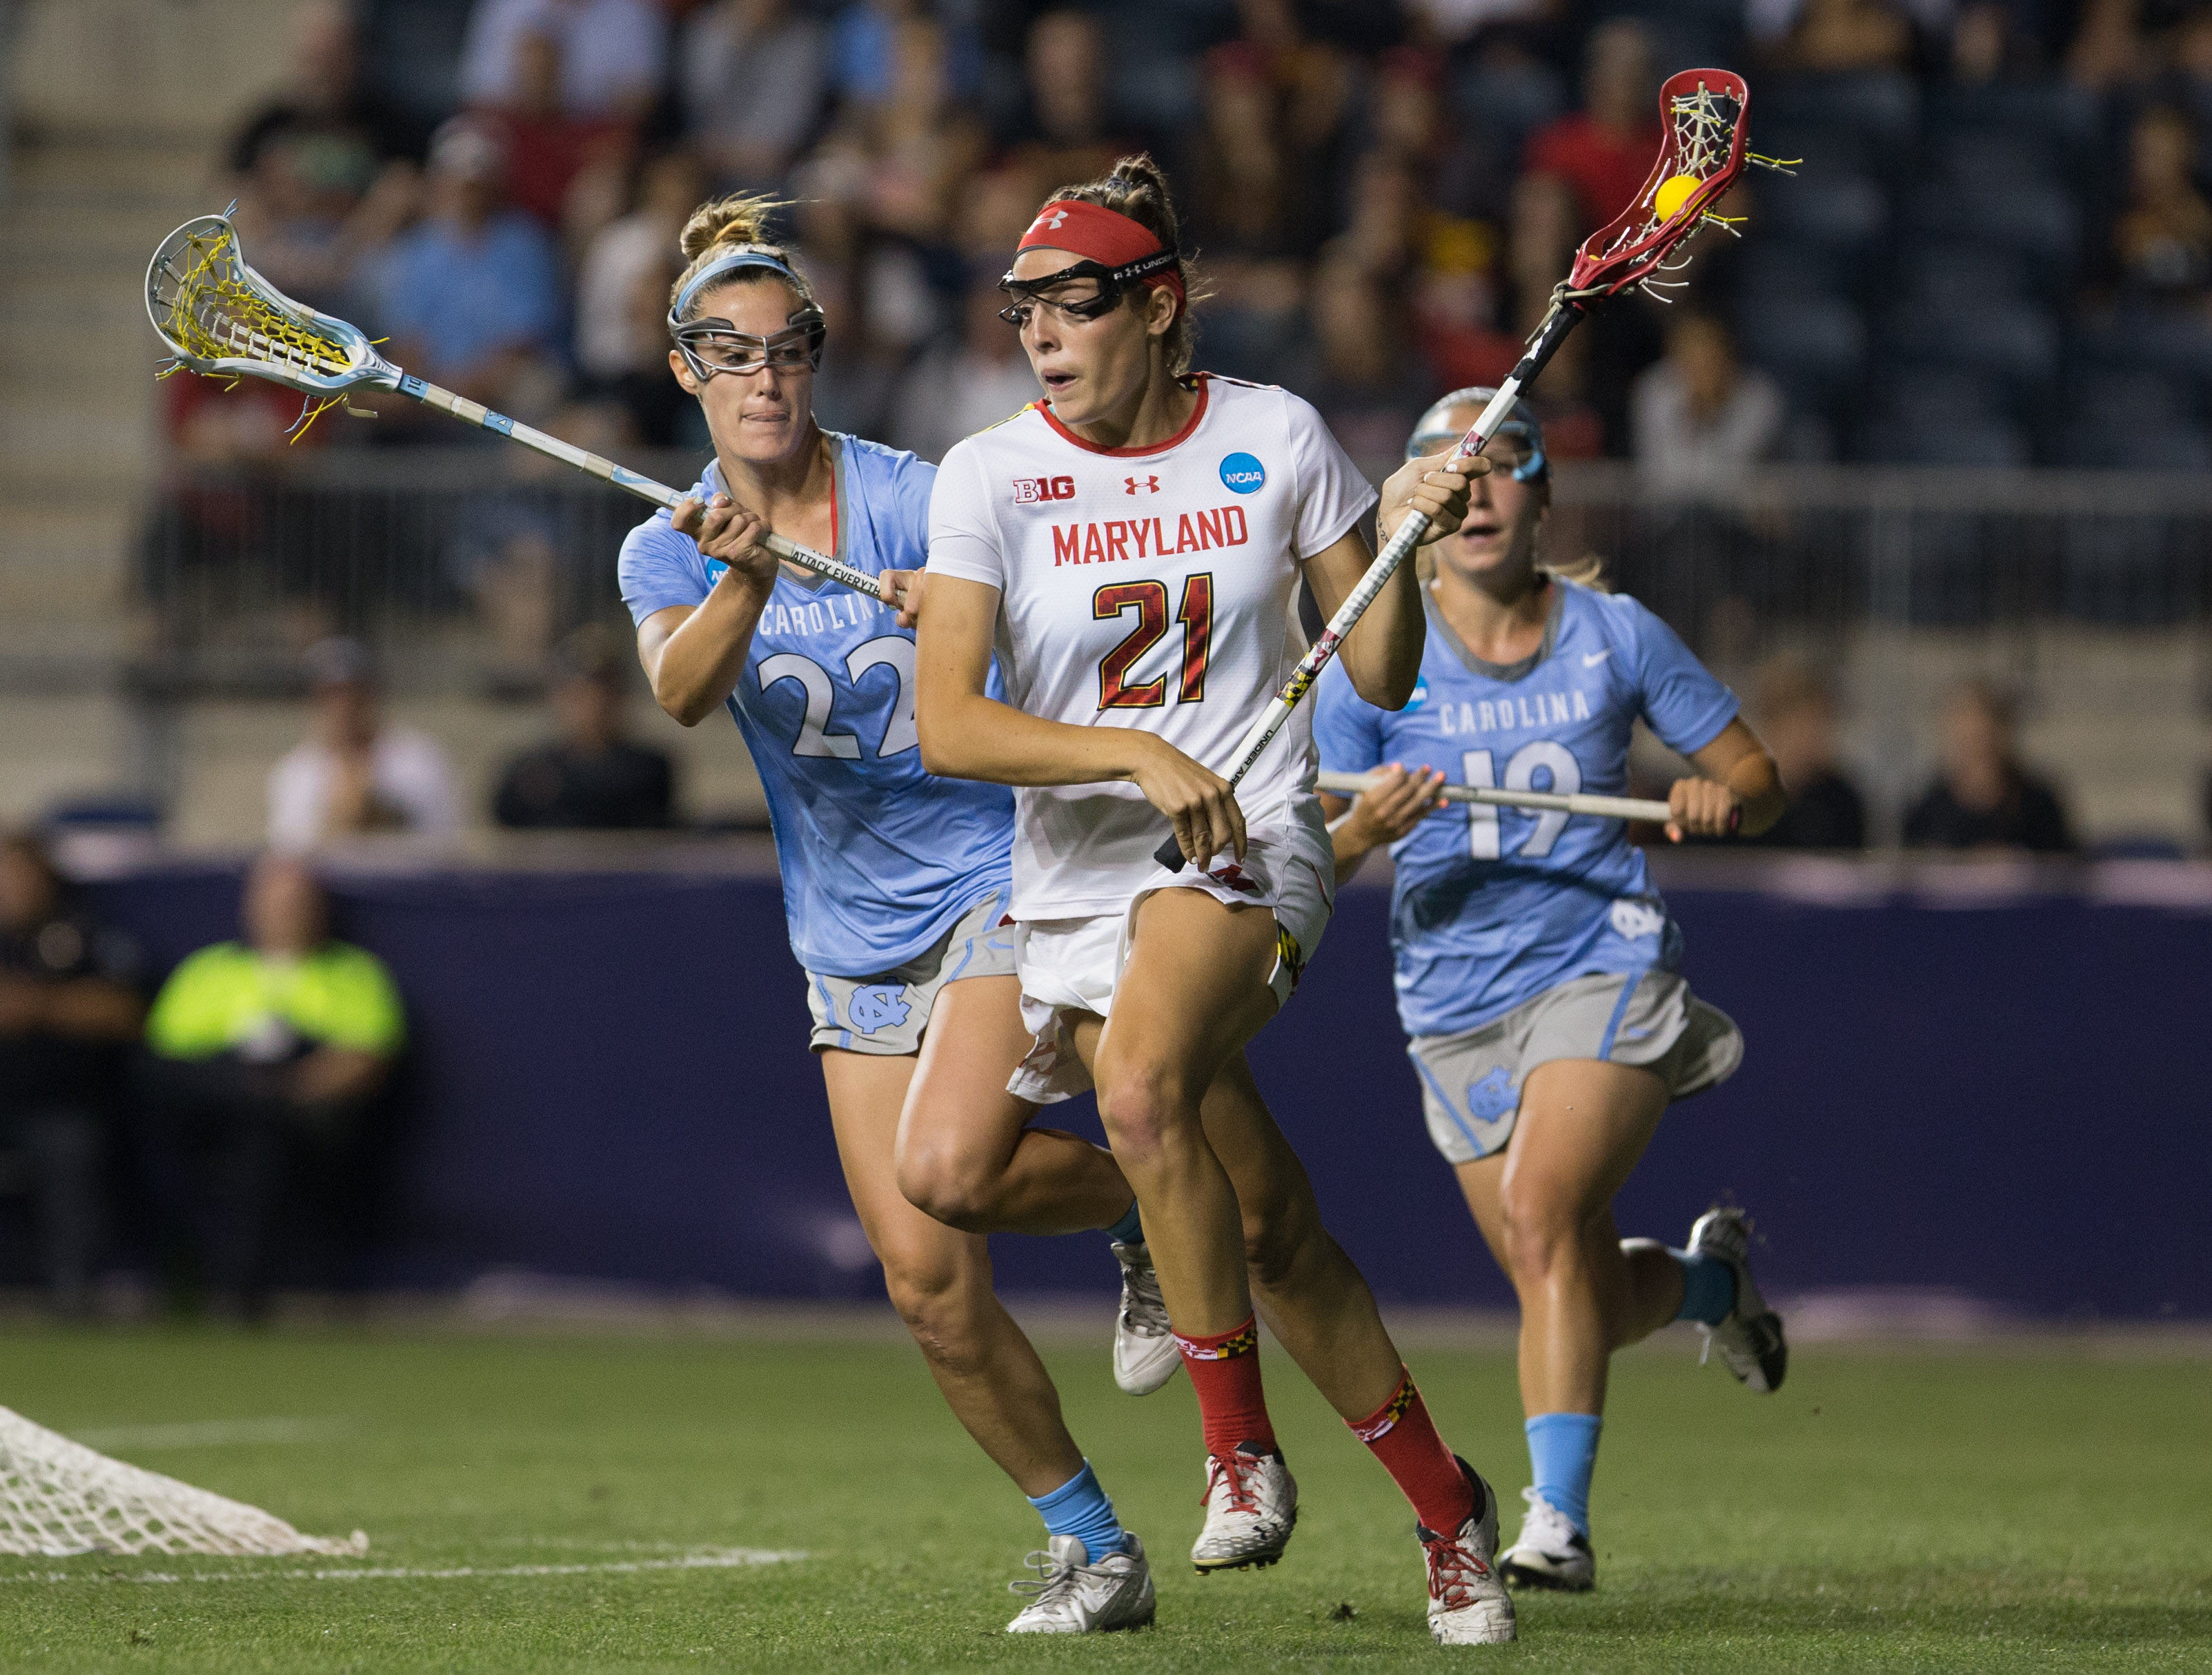 Maryland women's lacrosse will honor Taylor Cummings and five other seniors on Saturday. The Terps are 40-0 at home during their time in College Park.